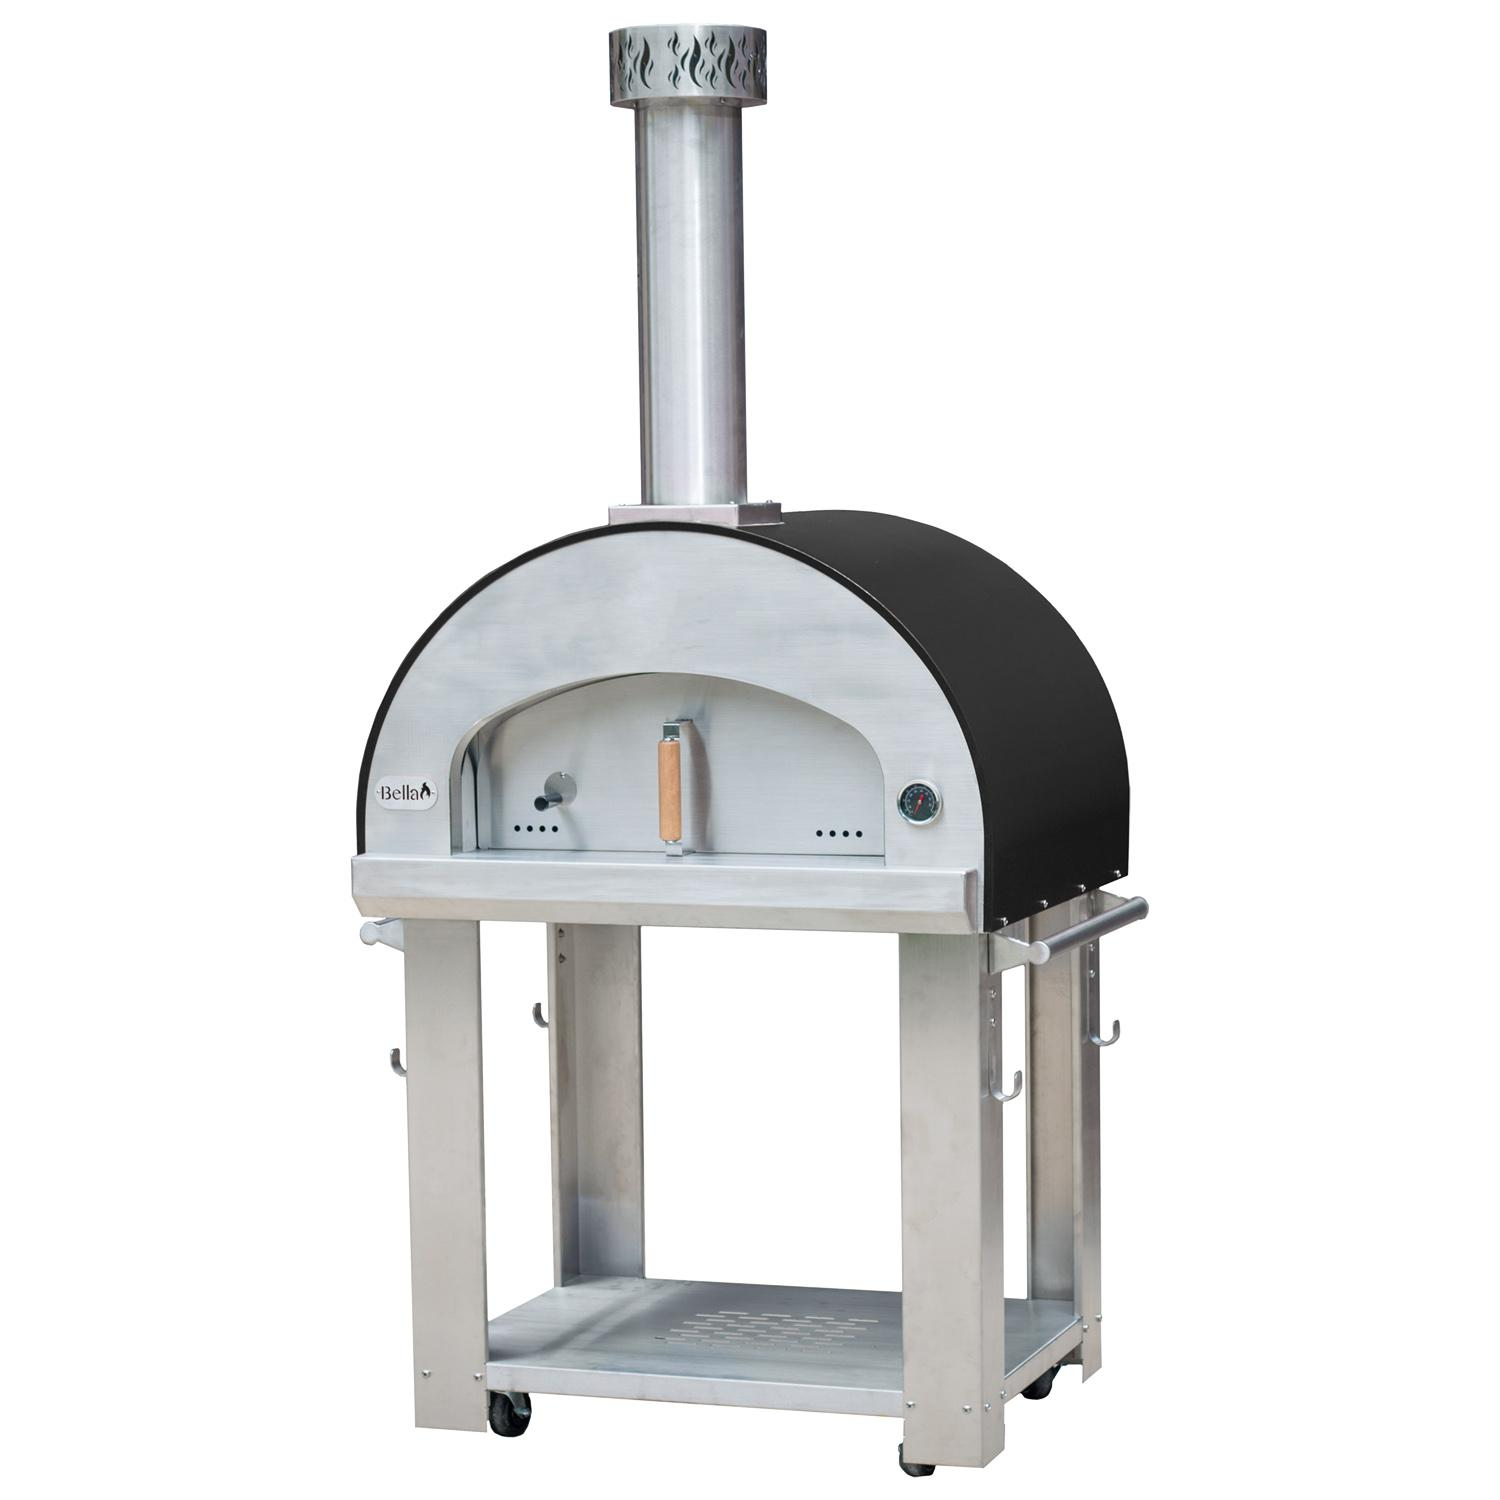 "Bella Outdoor Living Bella Grande 32"" Outdoor Wood Fired Pizza Oven On Cart - Black - Begs32b"